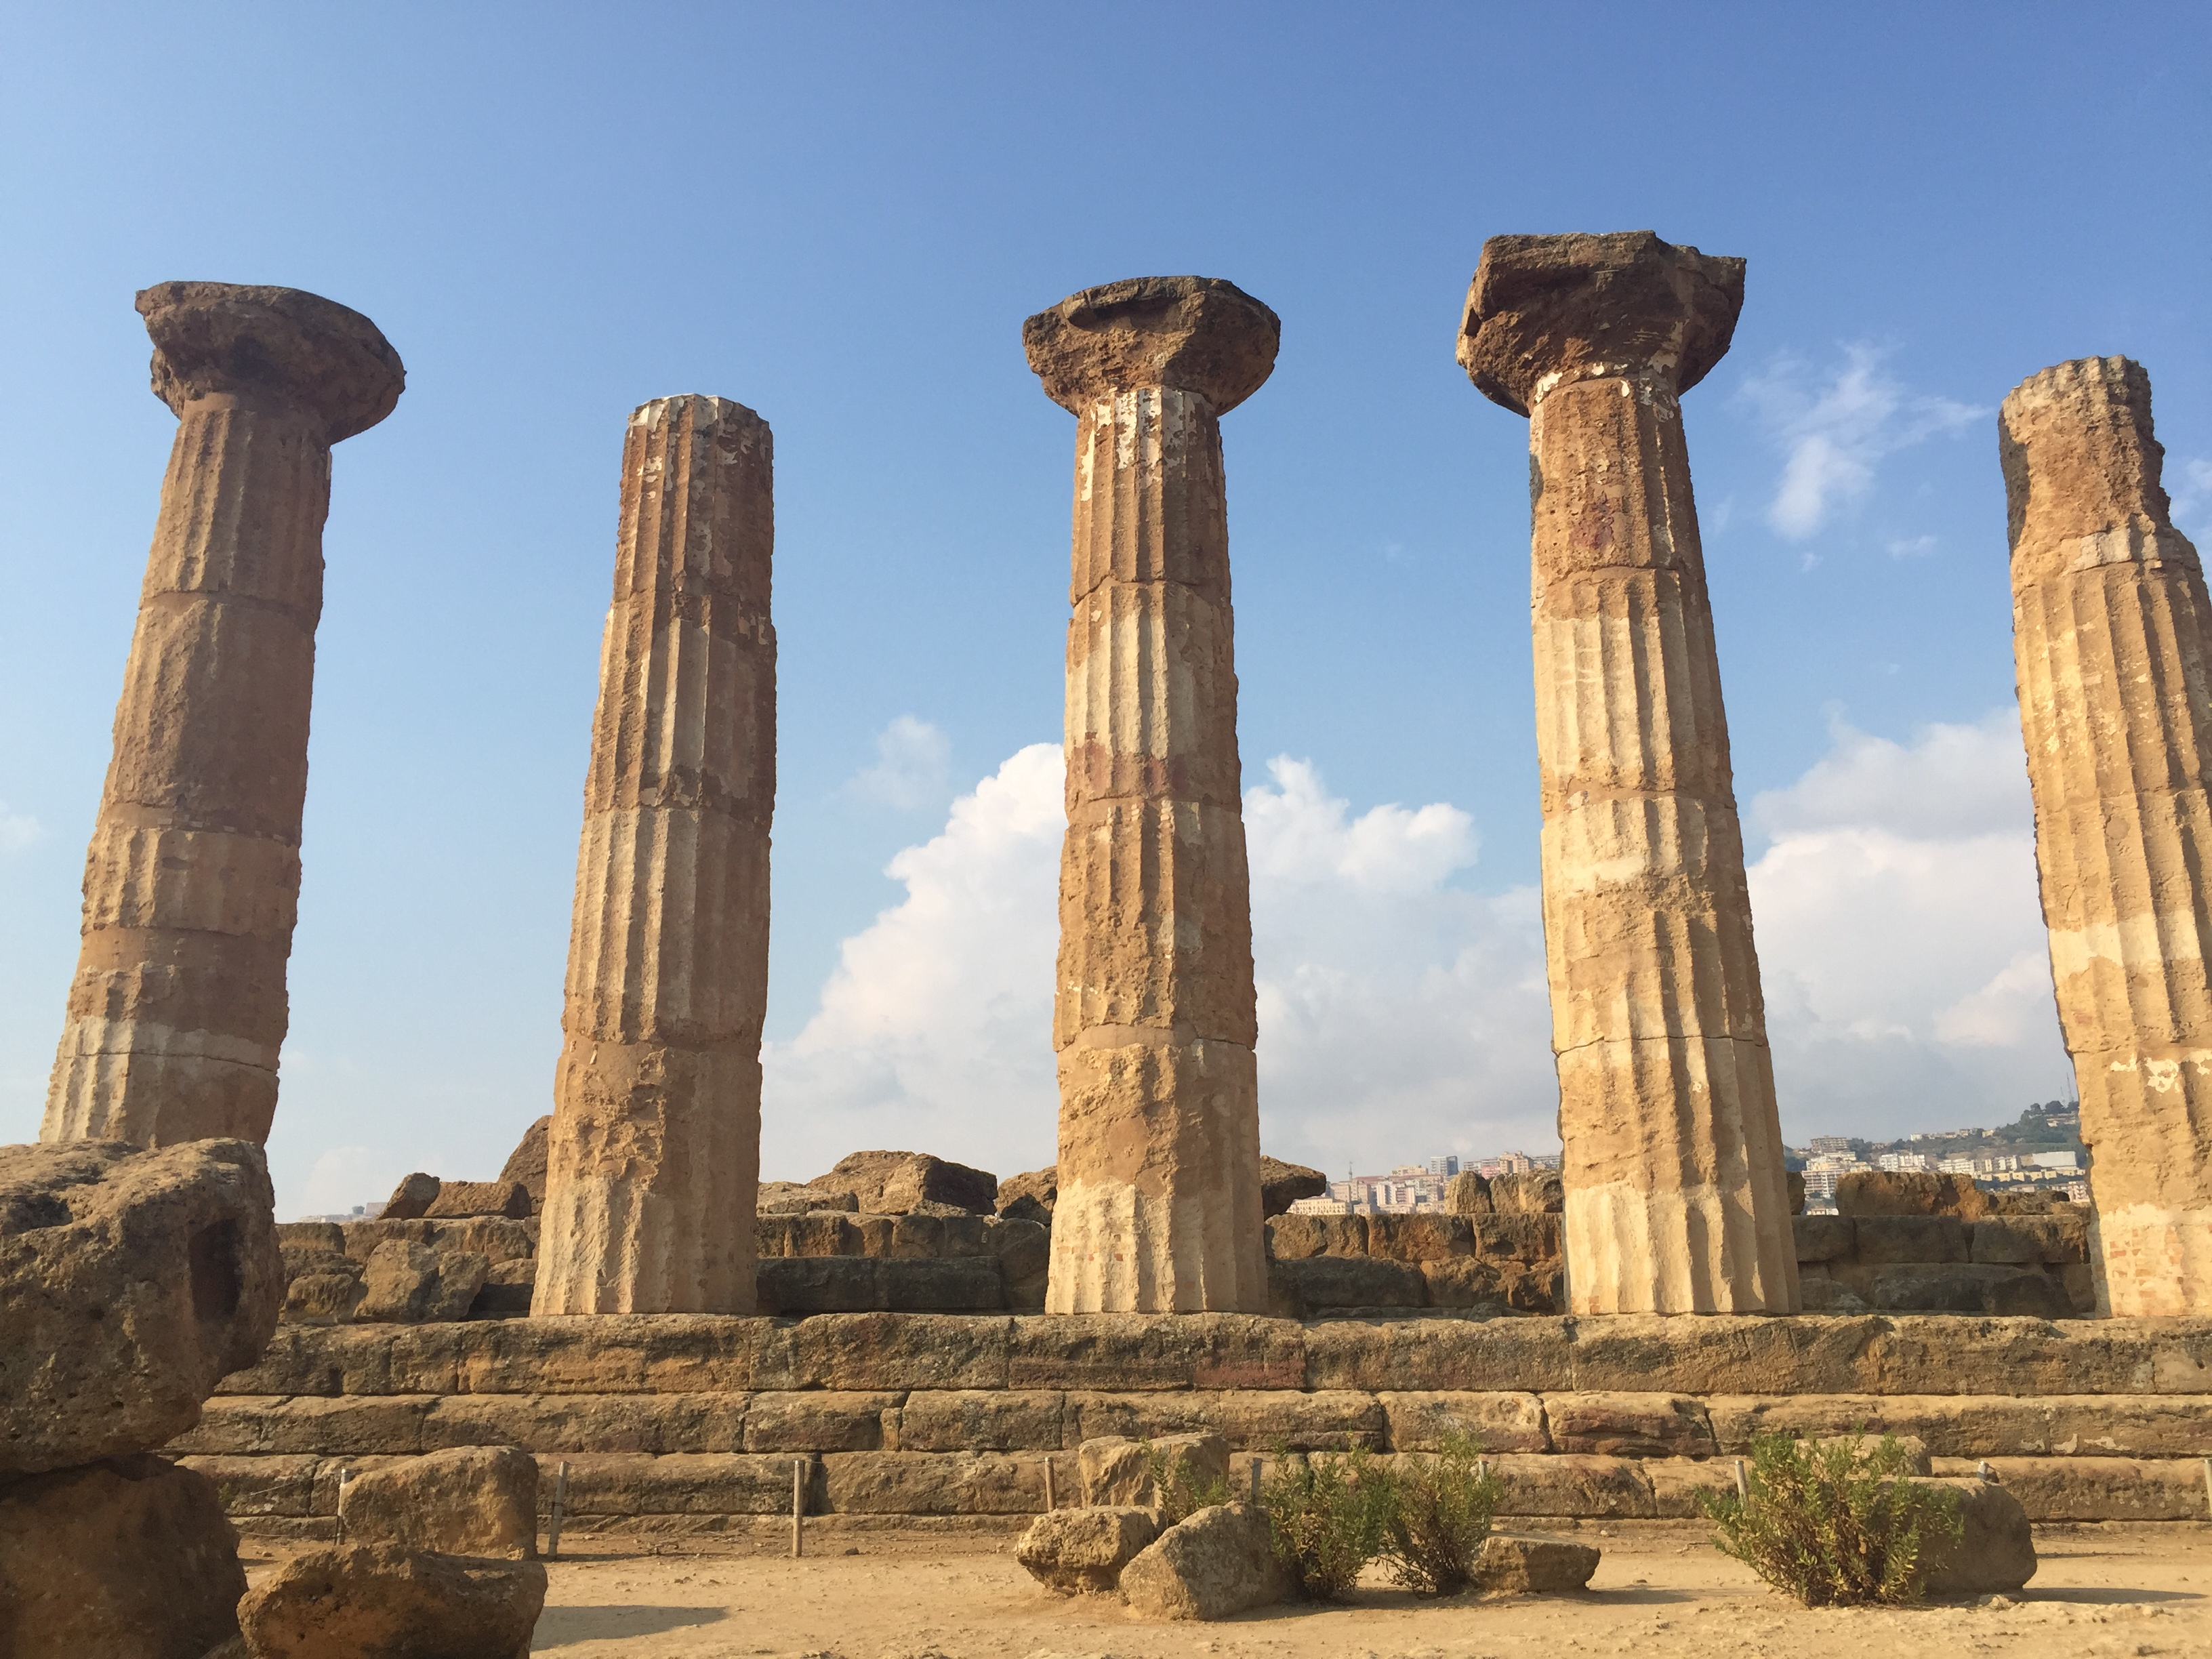 Wines of Sicily Ancient Ruins